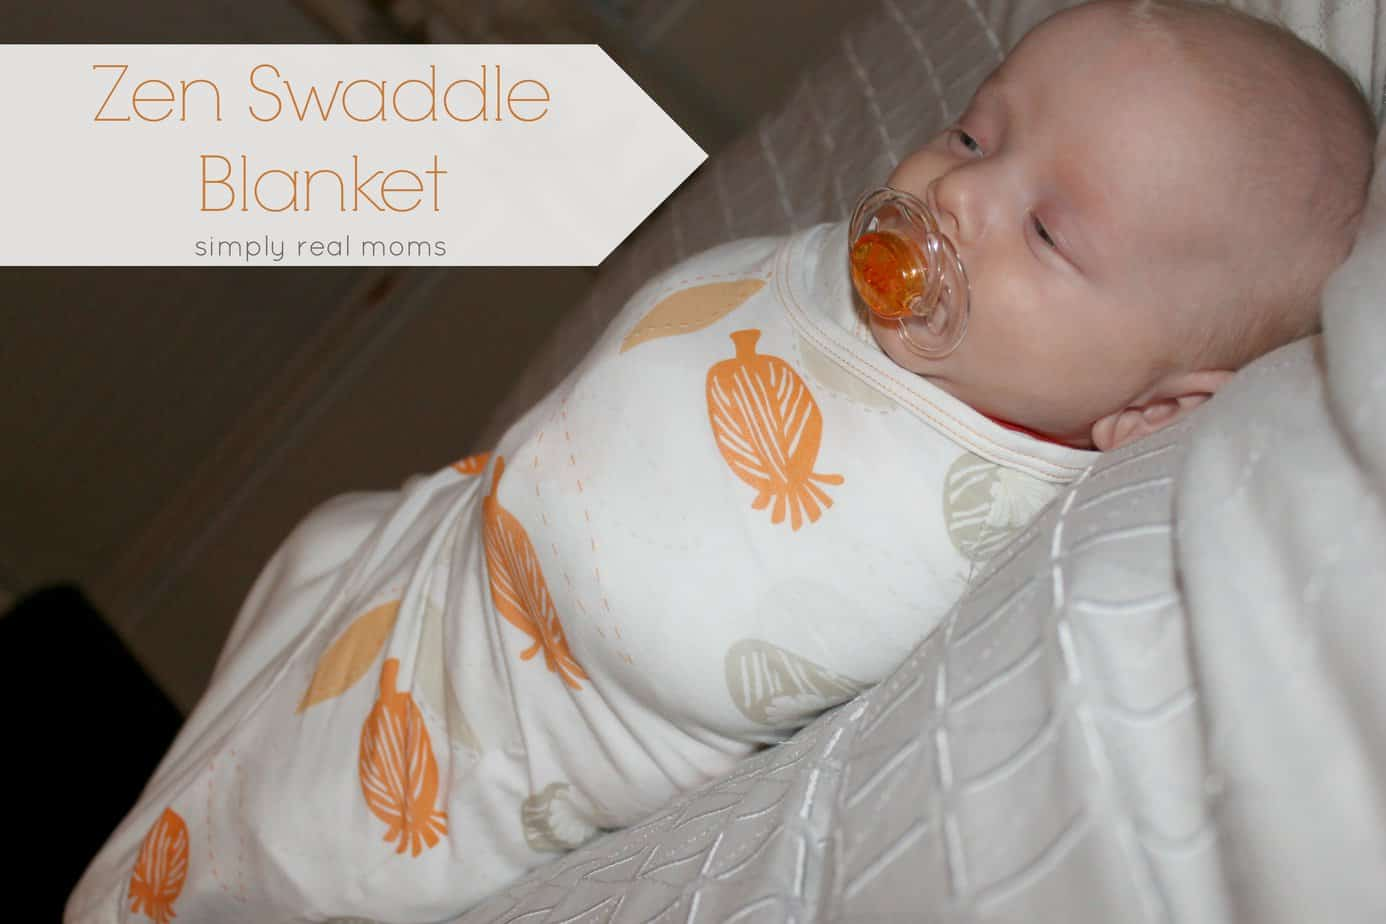 Zen Swaddle Blanket From Nested Bean 1